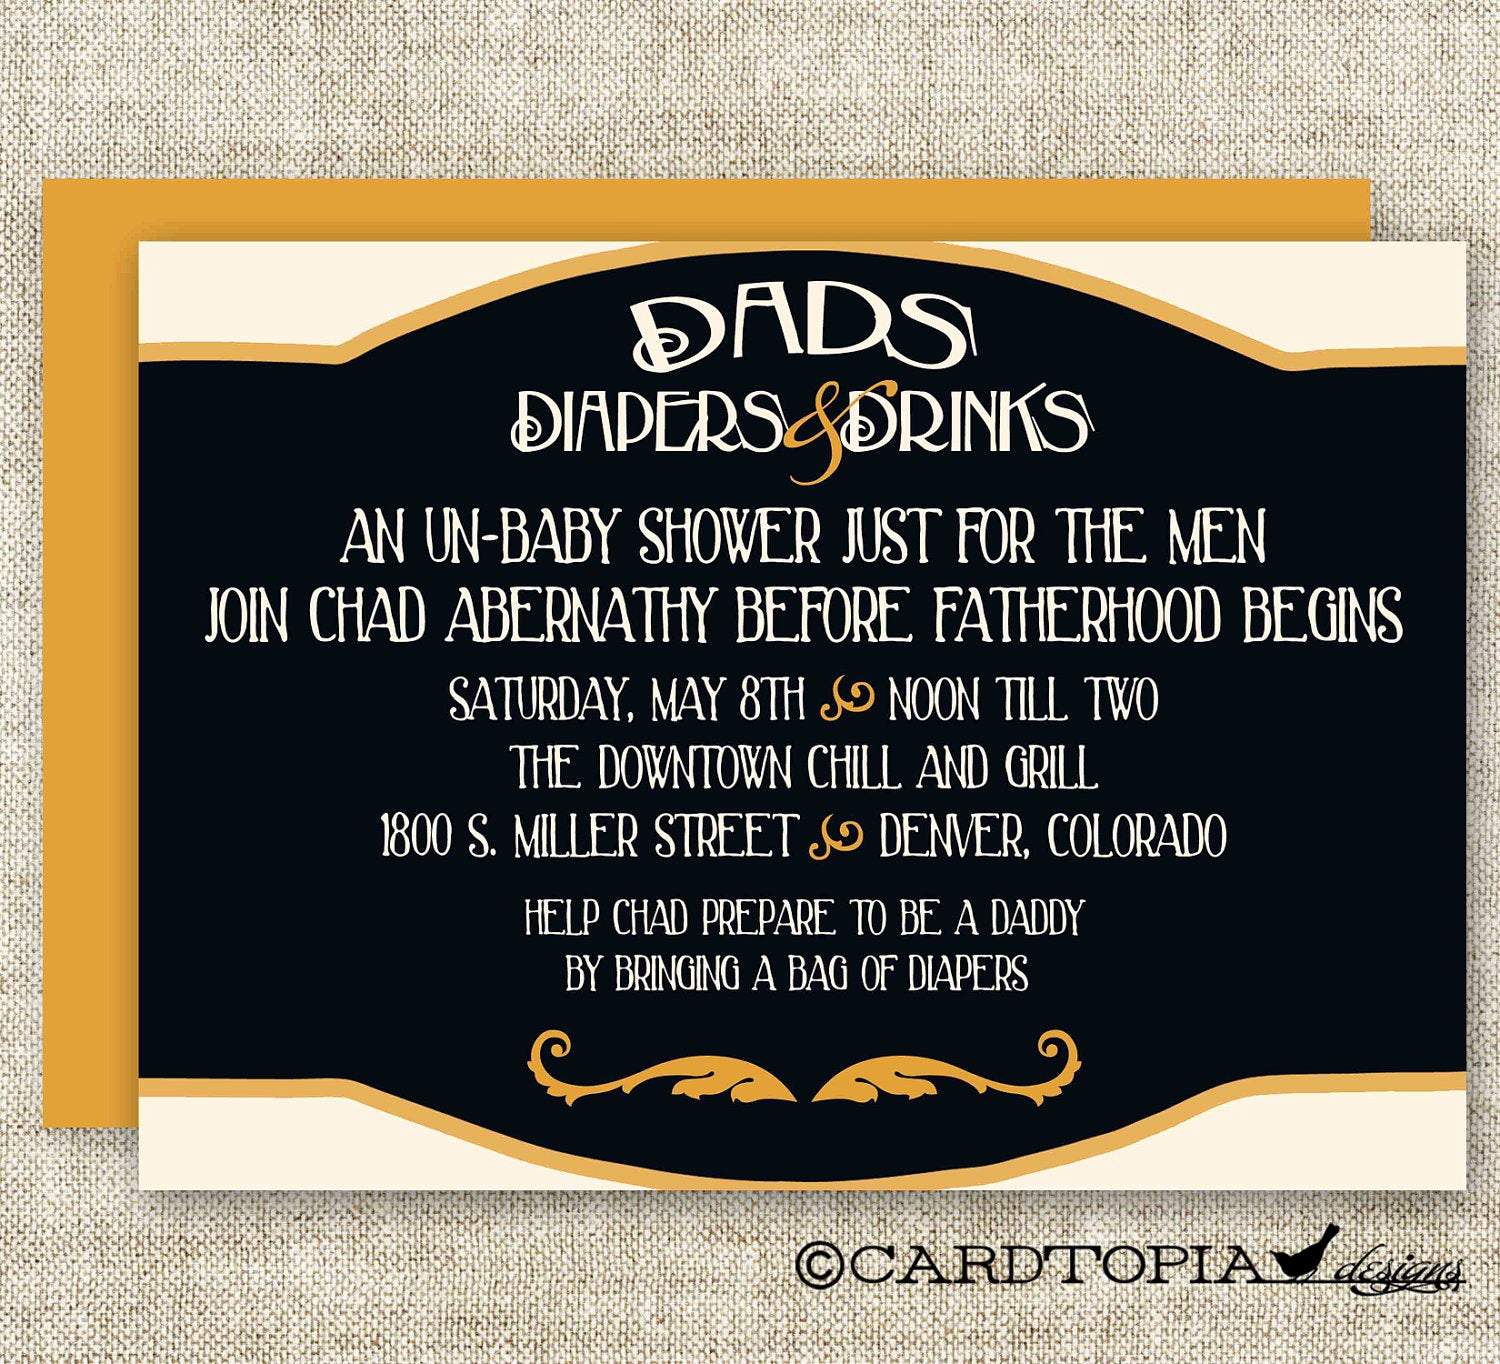 Diaper Party Invitation Wording Lovely Man Diaper Shower Invitations Dad Diaper and Drinks Party